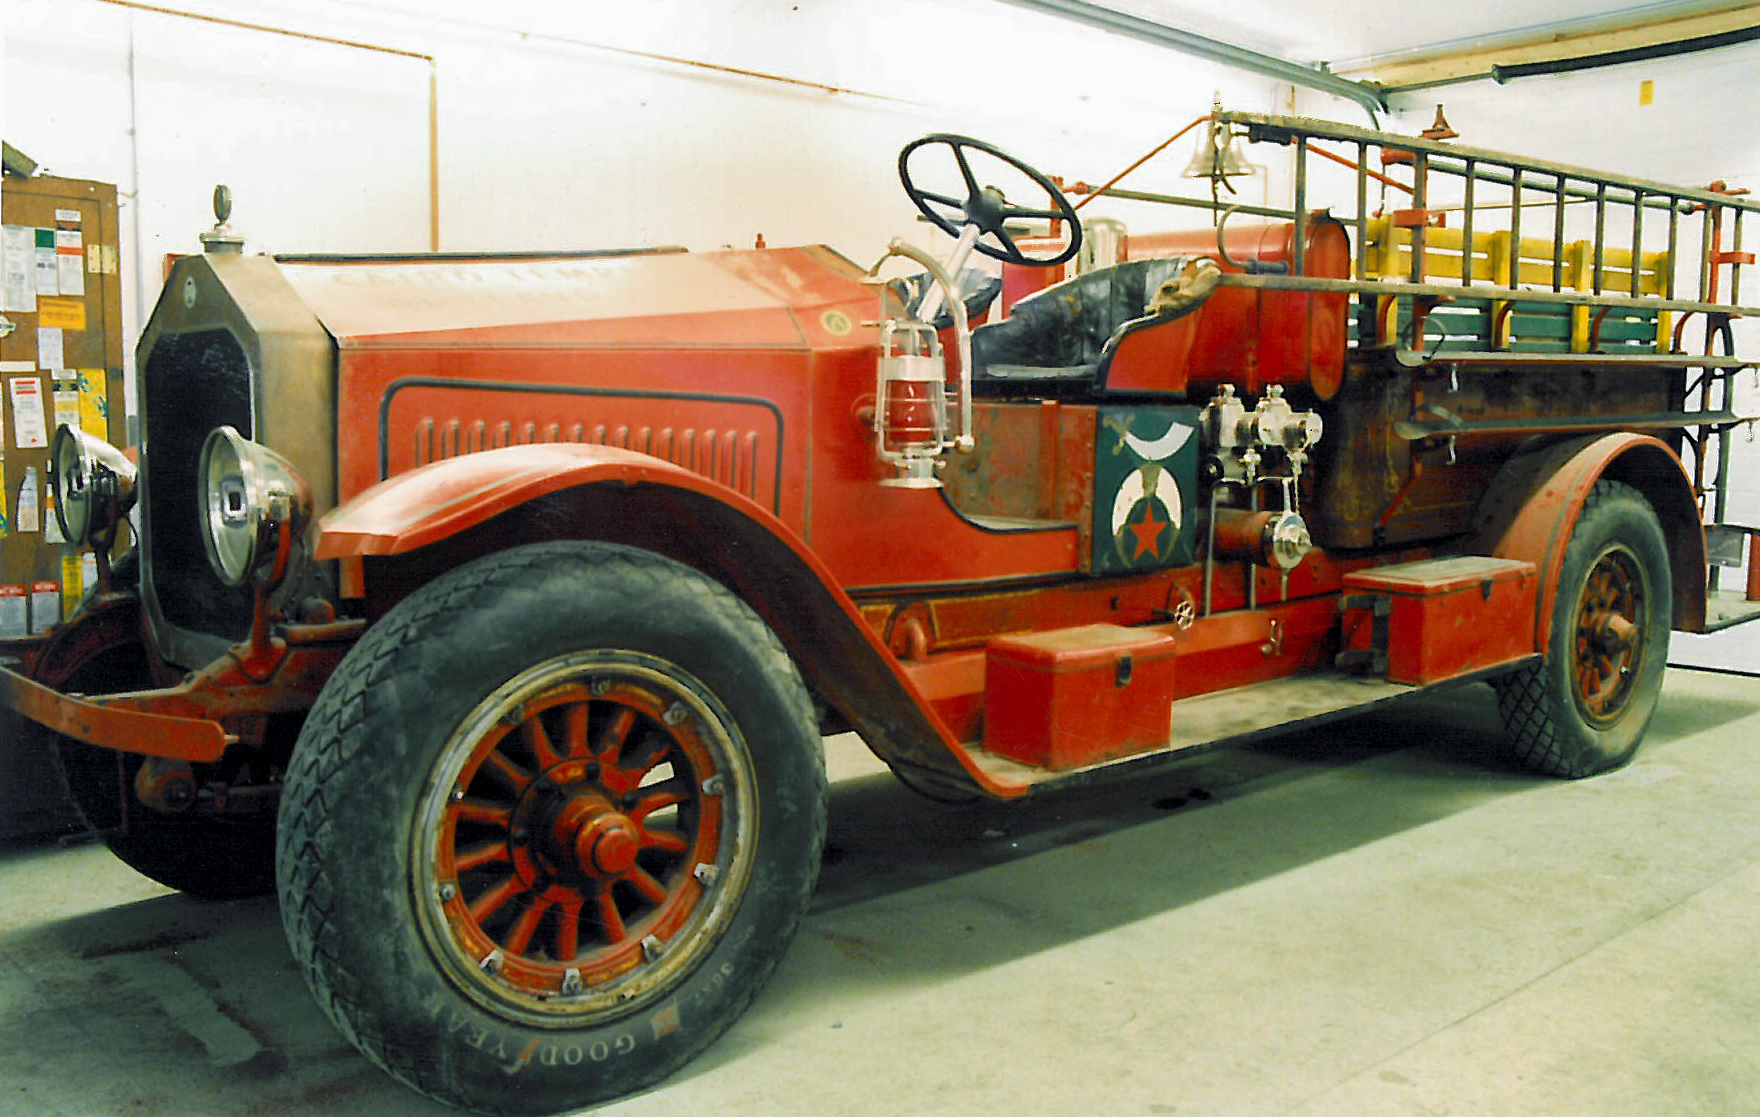 The 1923 Maxim was in poor condition when we found it in Rutland retired from parade use by the Shriners.